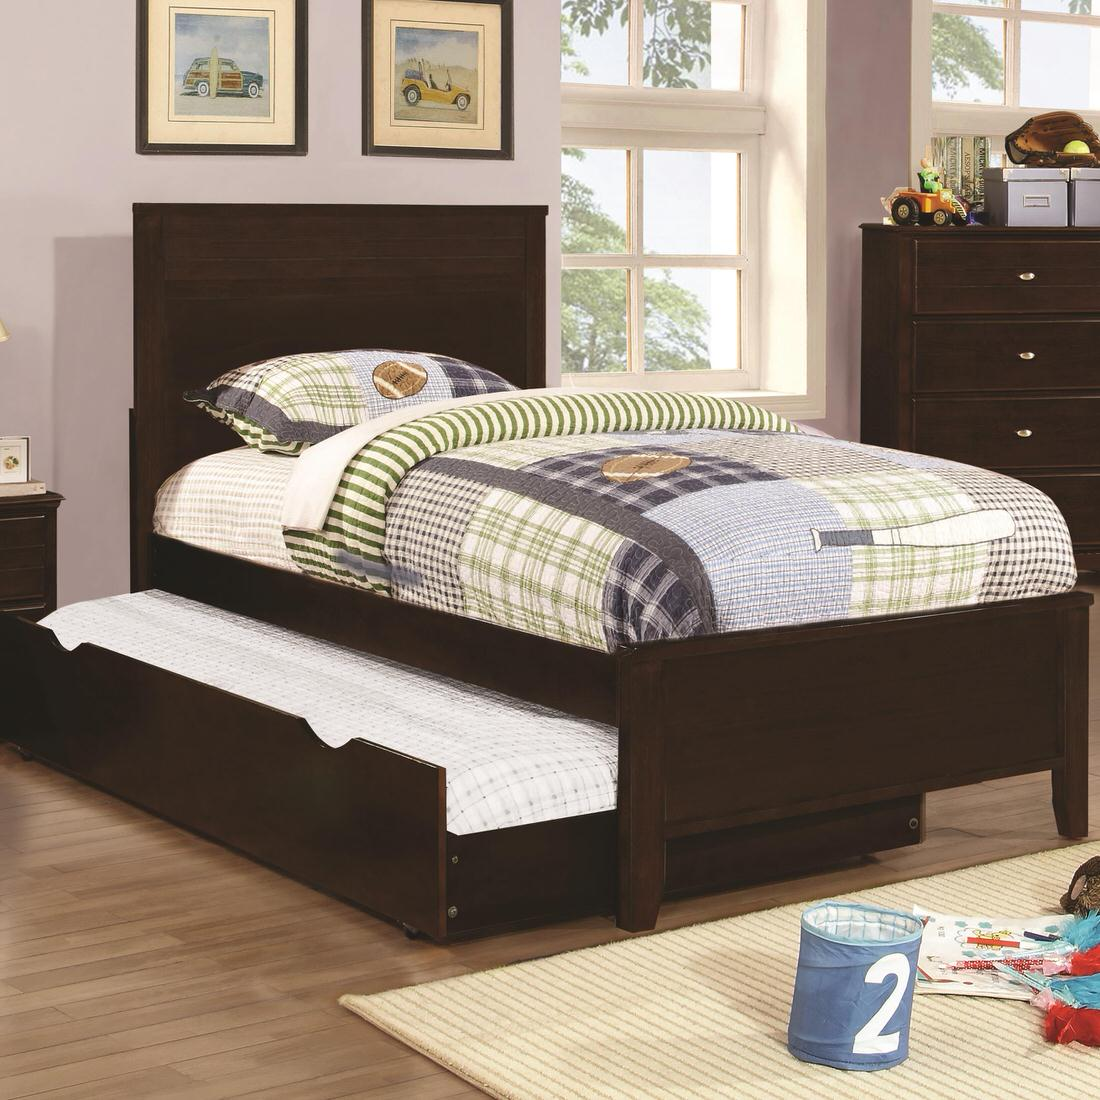 The Collection Furniture: Coaster Ashton Bedroom Collection